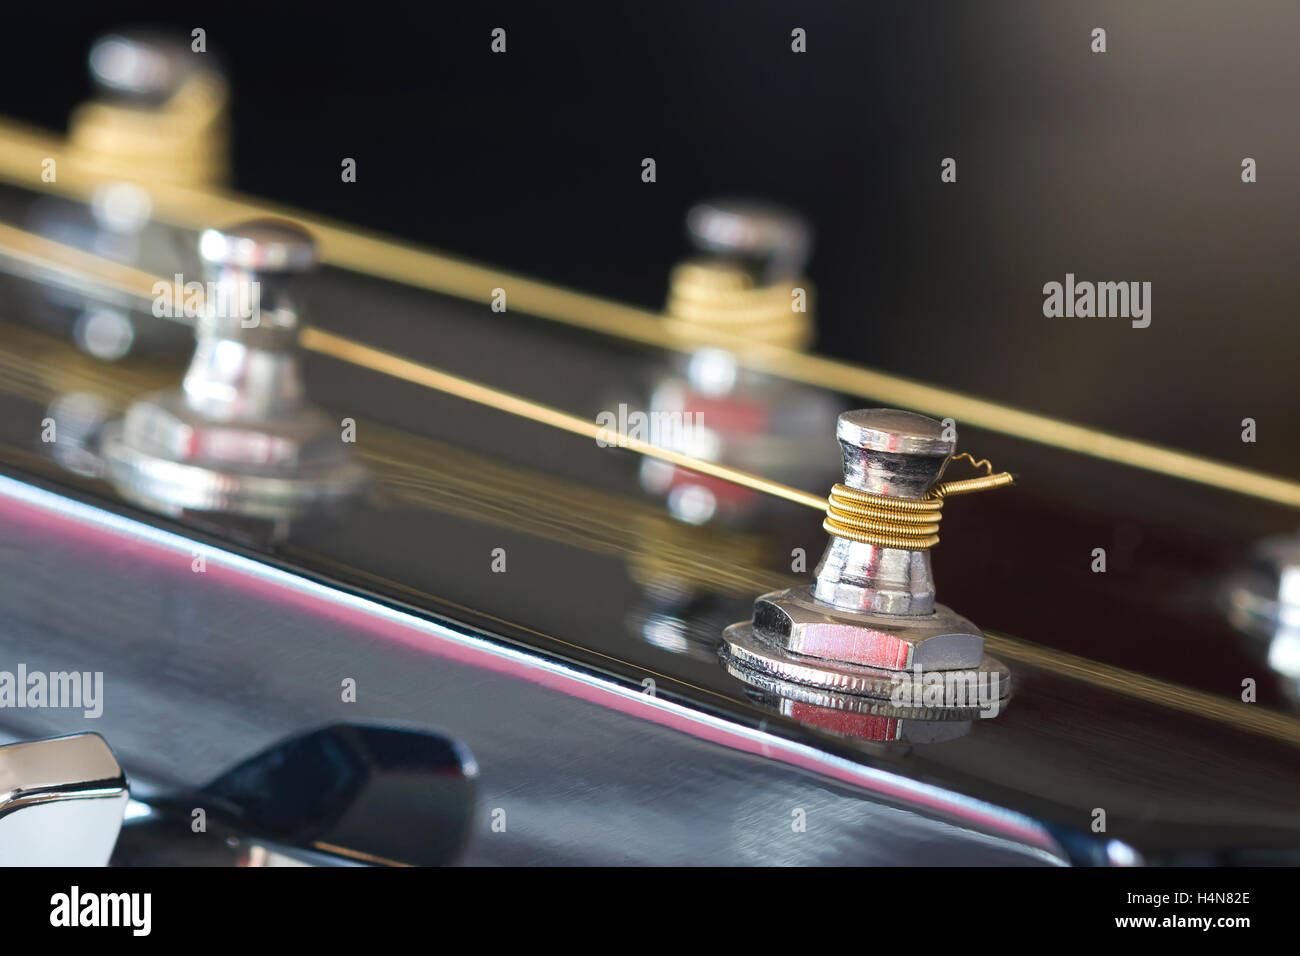 Closeup image of one of a tune post of a guitar. - Stock Image